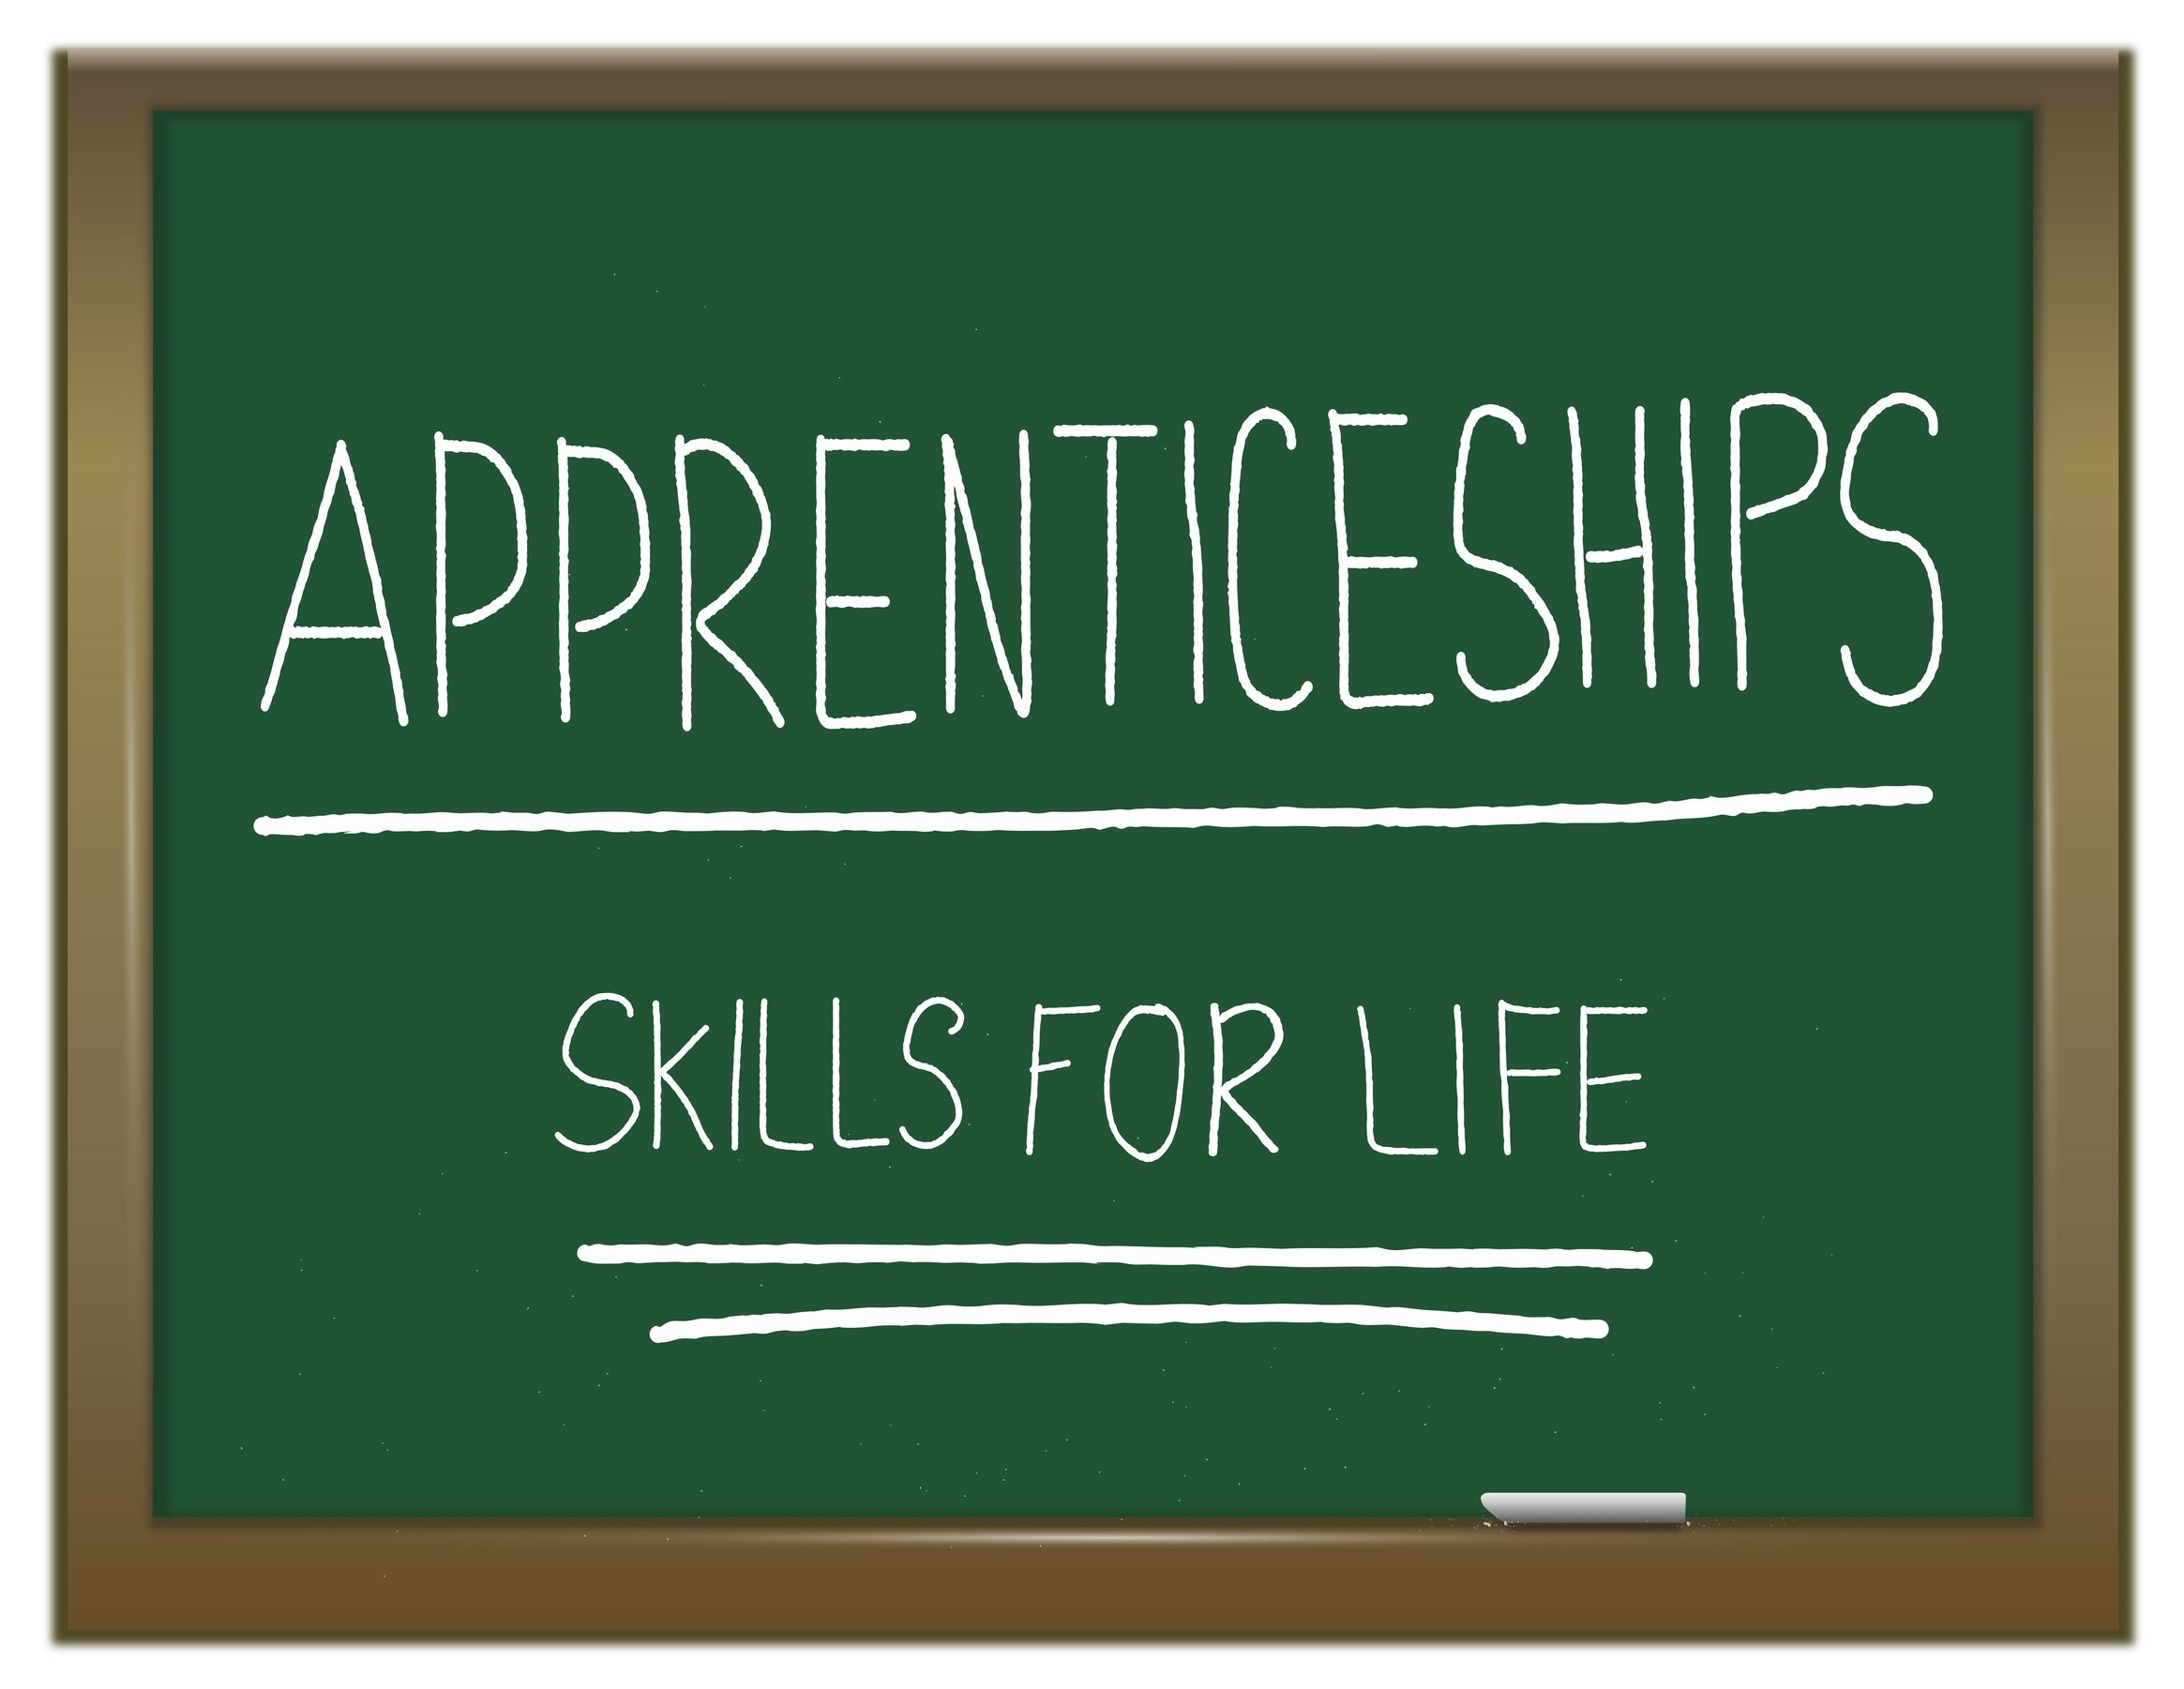 Apprenticeship Myths